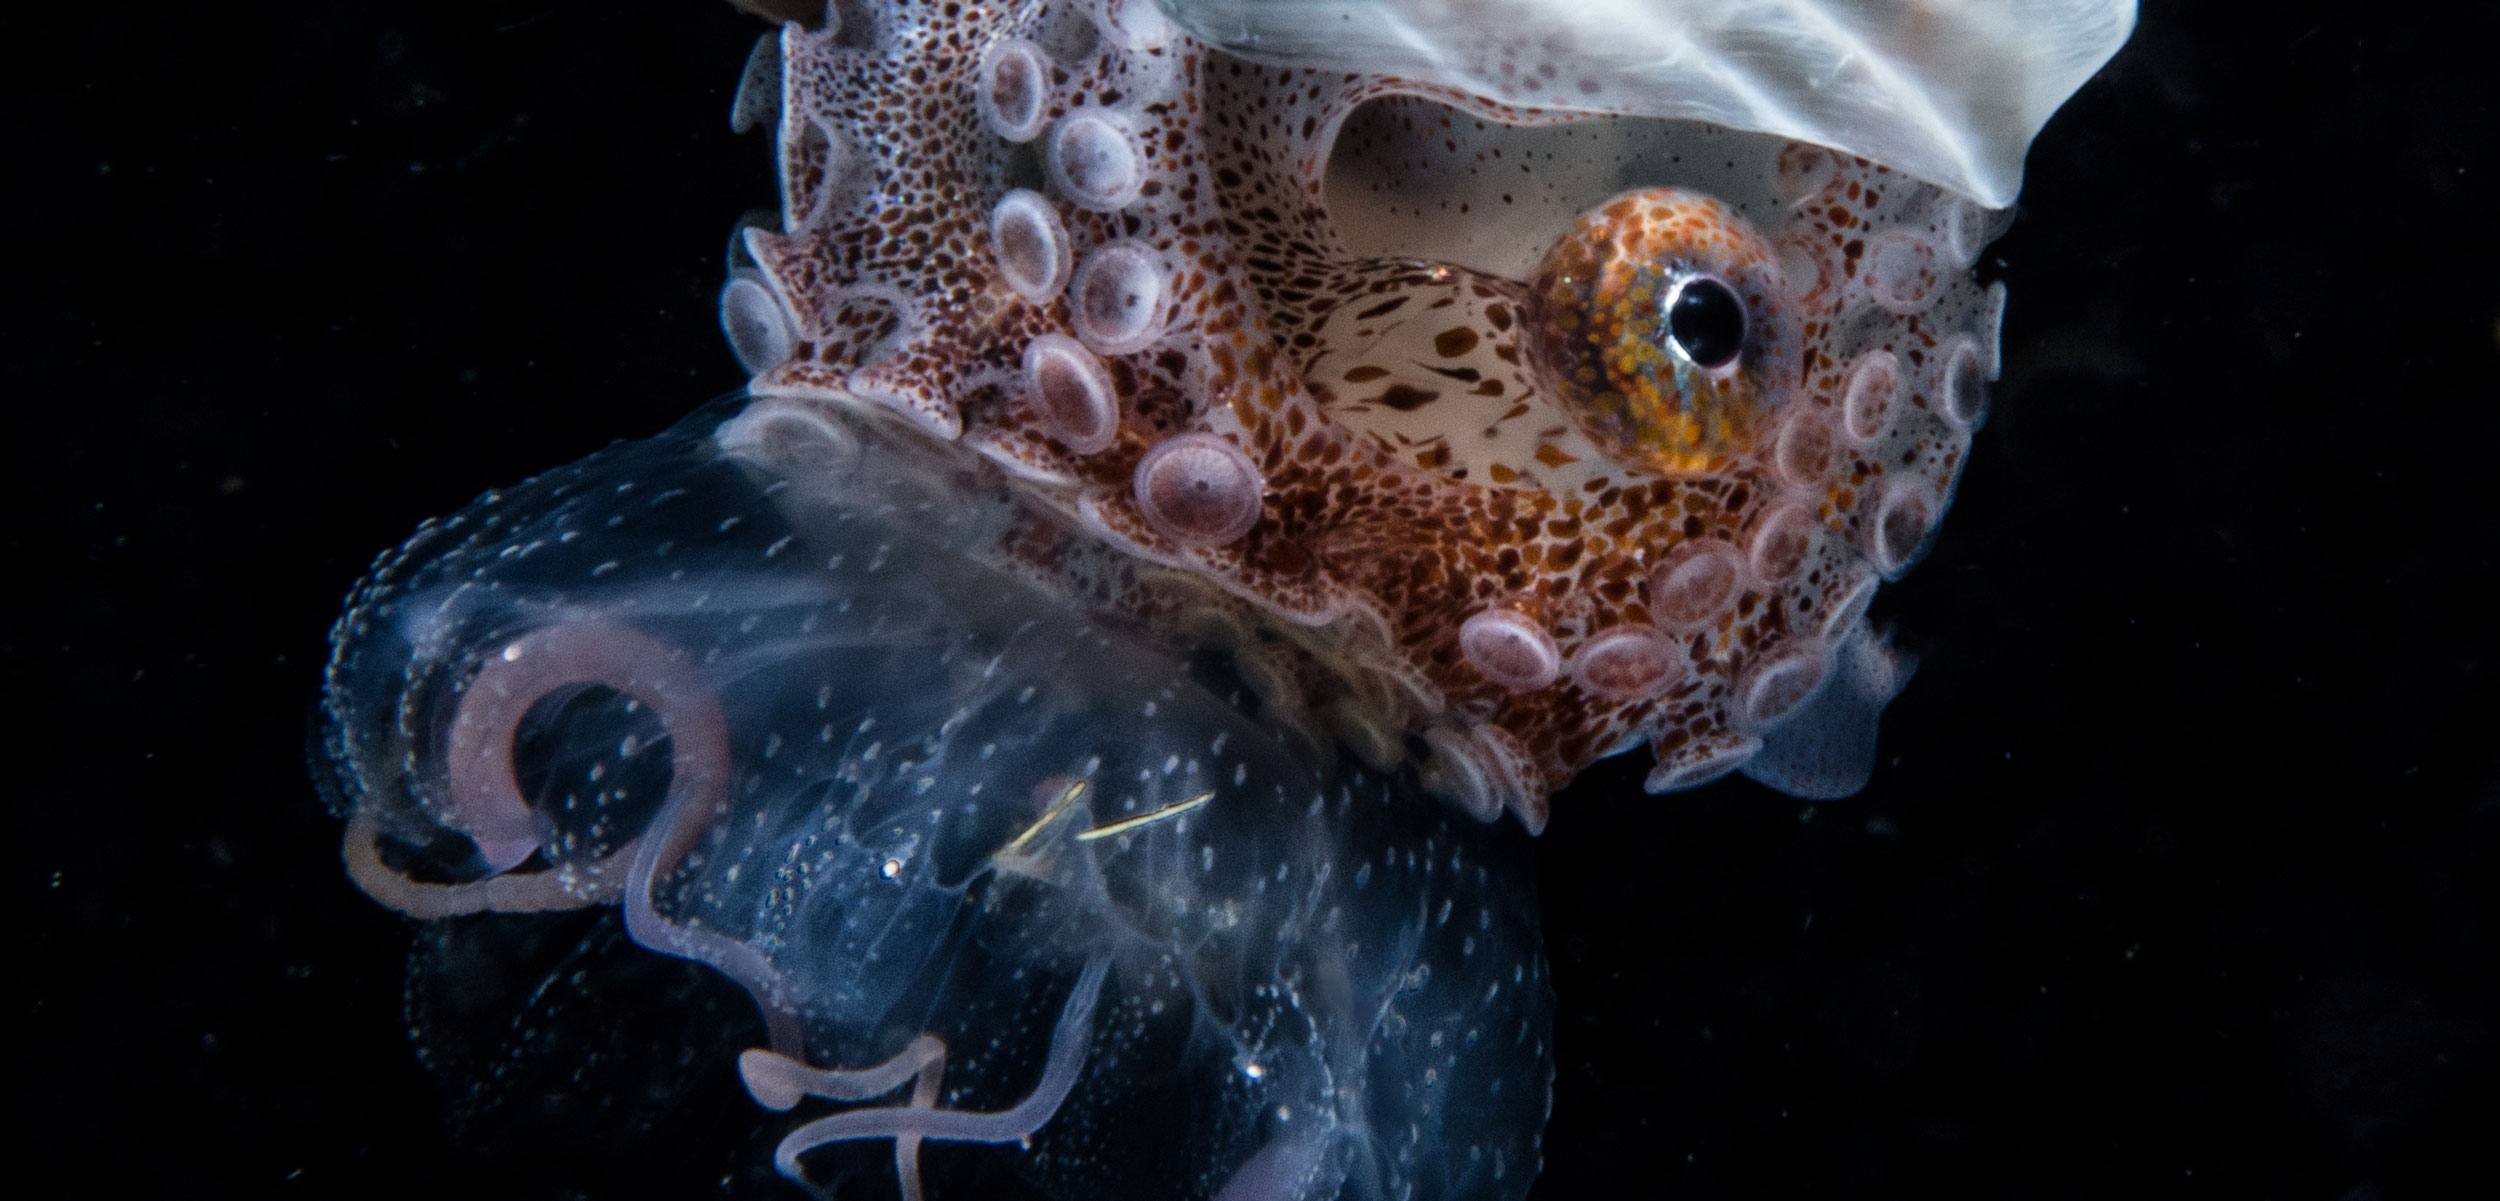 Nautilus riding a jellyfish